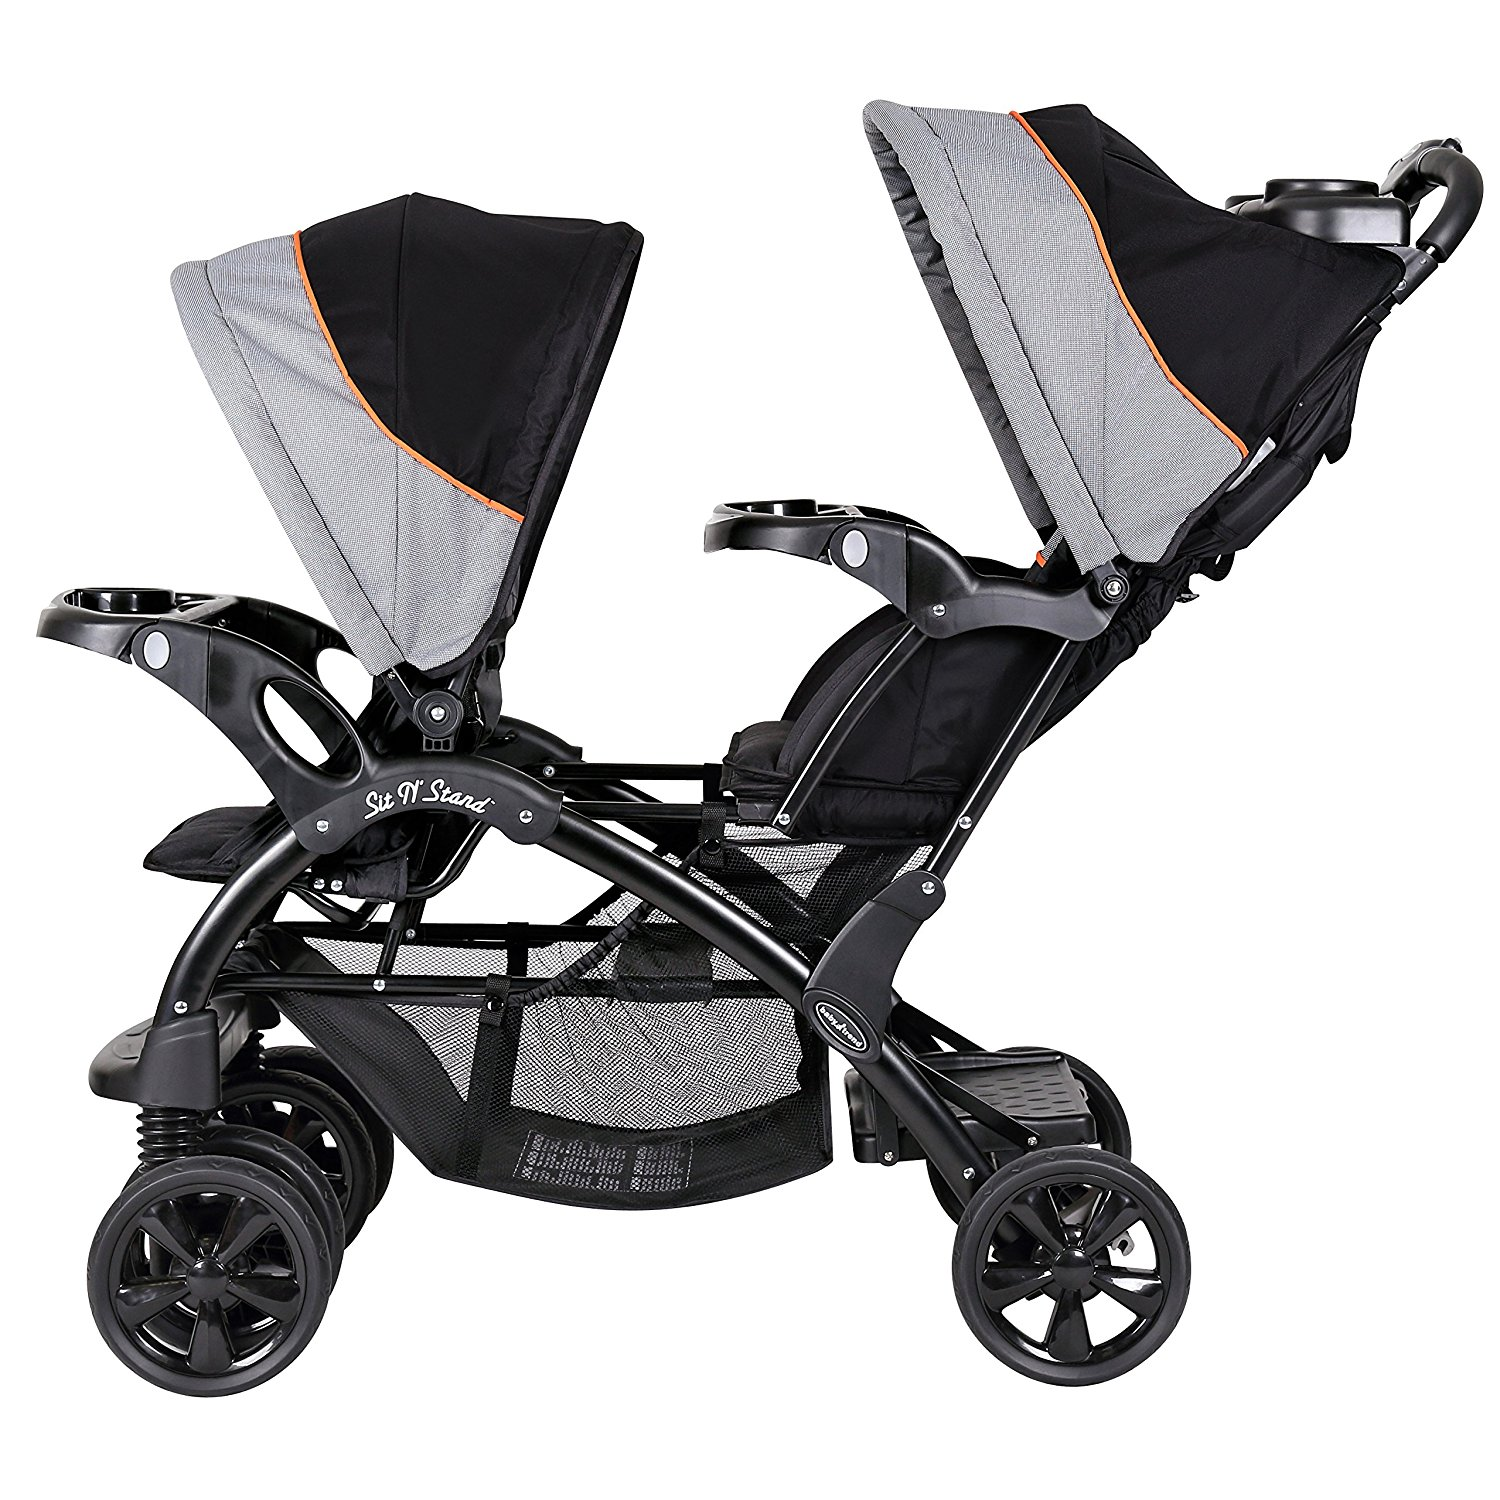 Baby Trend Double Sit N Stand Toddler and Baby Stroller, Millennium